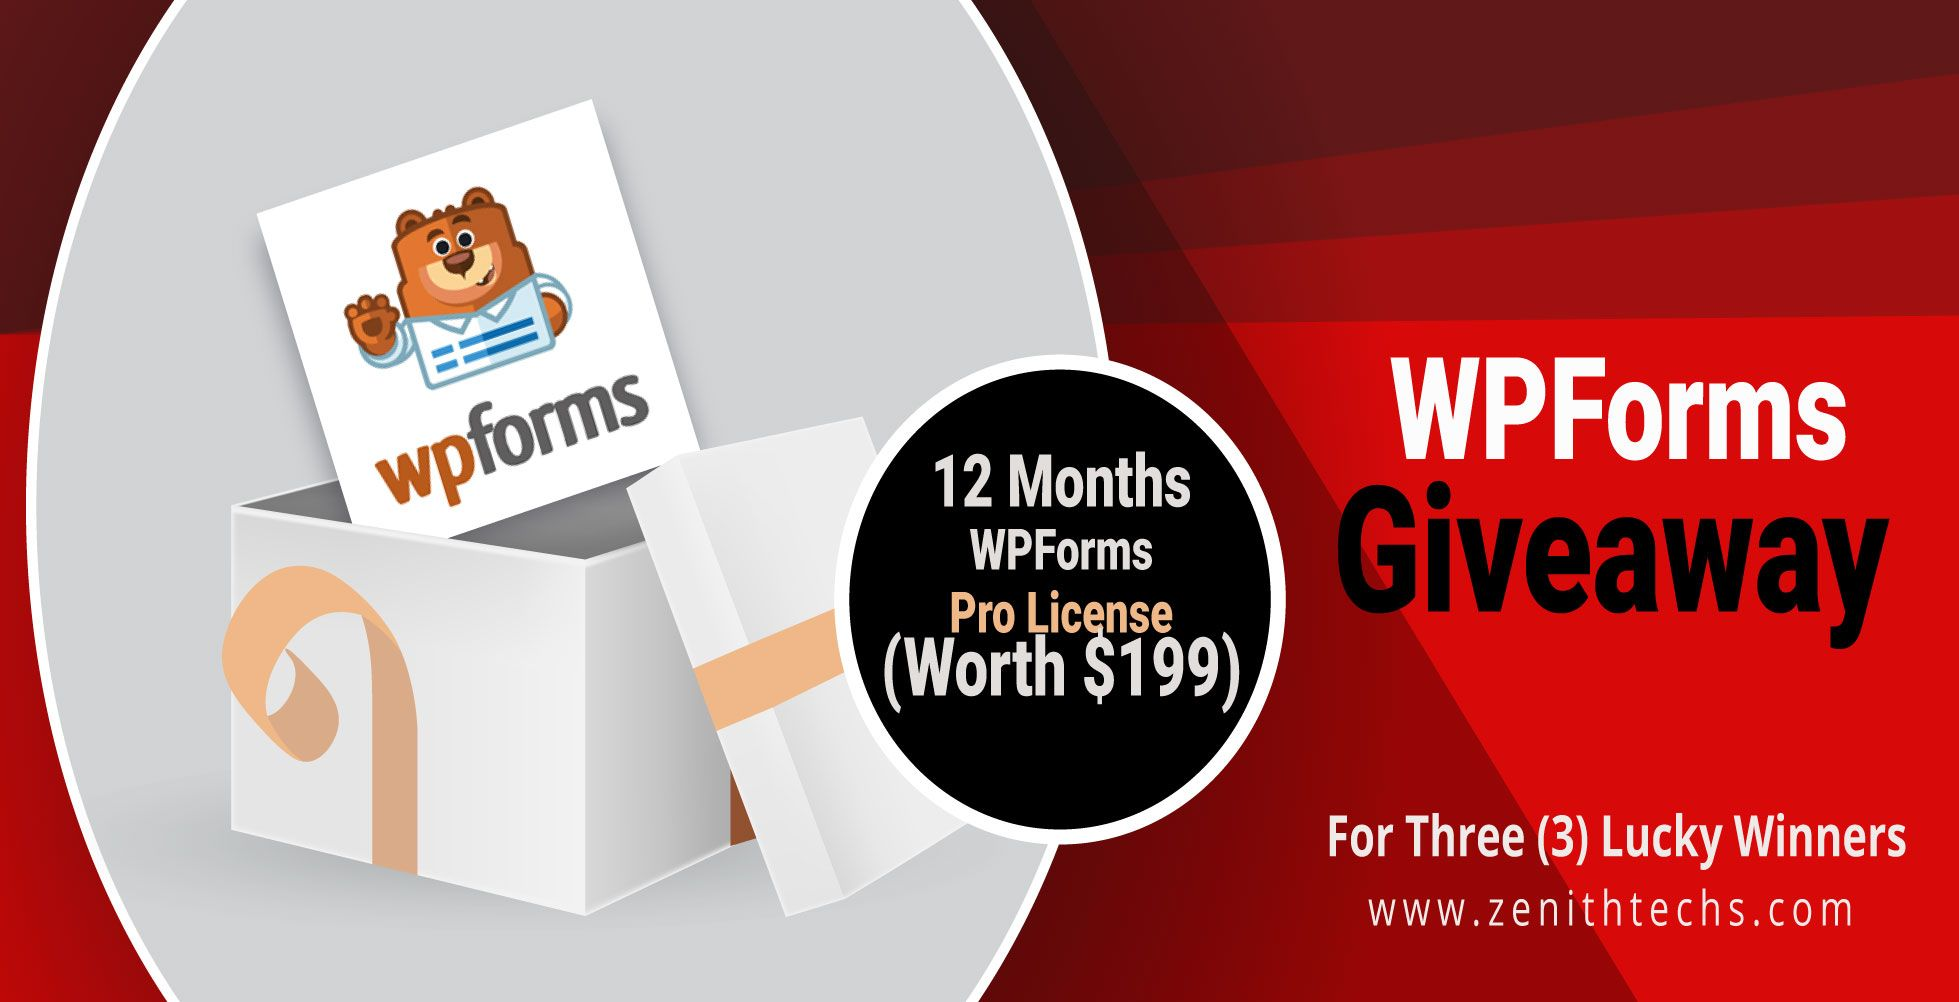 WPForms Best Form Builder For WordPress Giveaway Win Pro